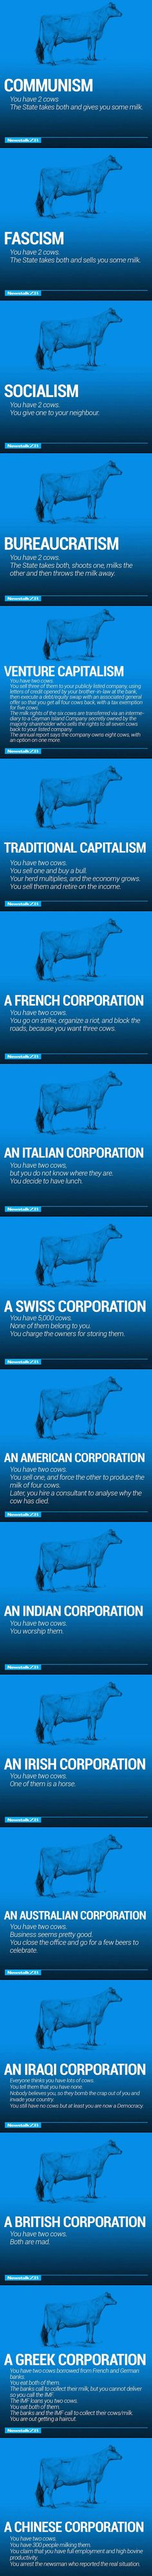 Click to view image: 'f3f_1464388689-funny-economy-explained-cows-capitalism_1464388790.jpeg'